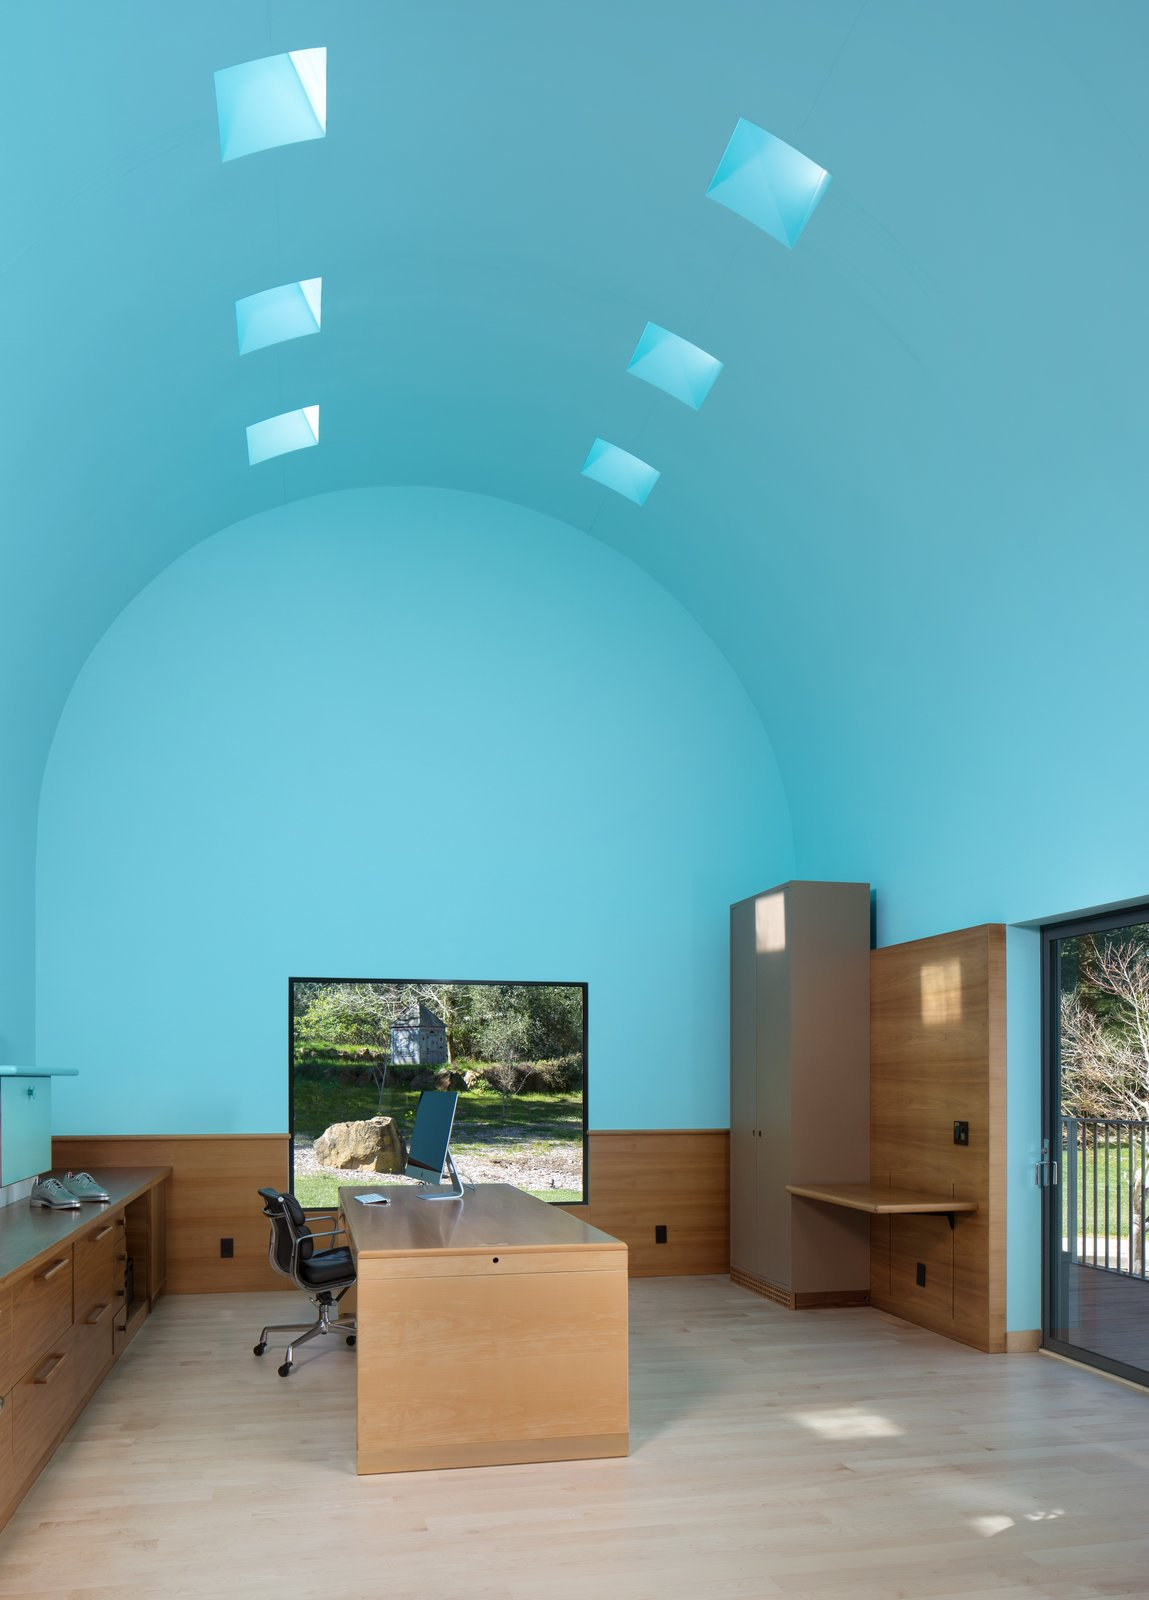 The office boasts an 18-foot, barrel-vaulted ceiling, an architectural metaphor for inspiration and exaltation.